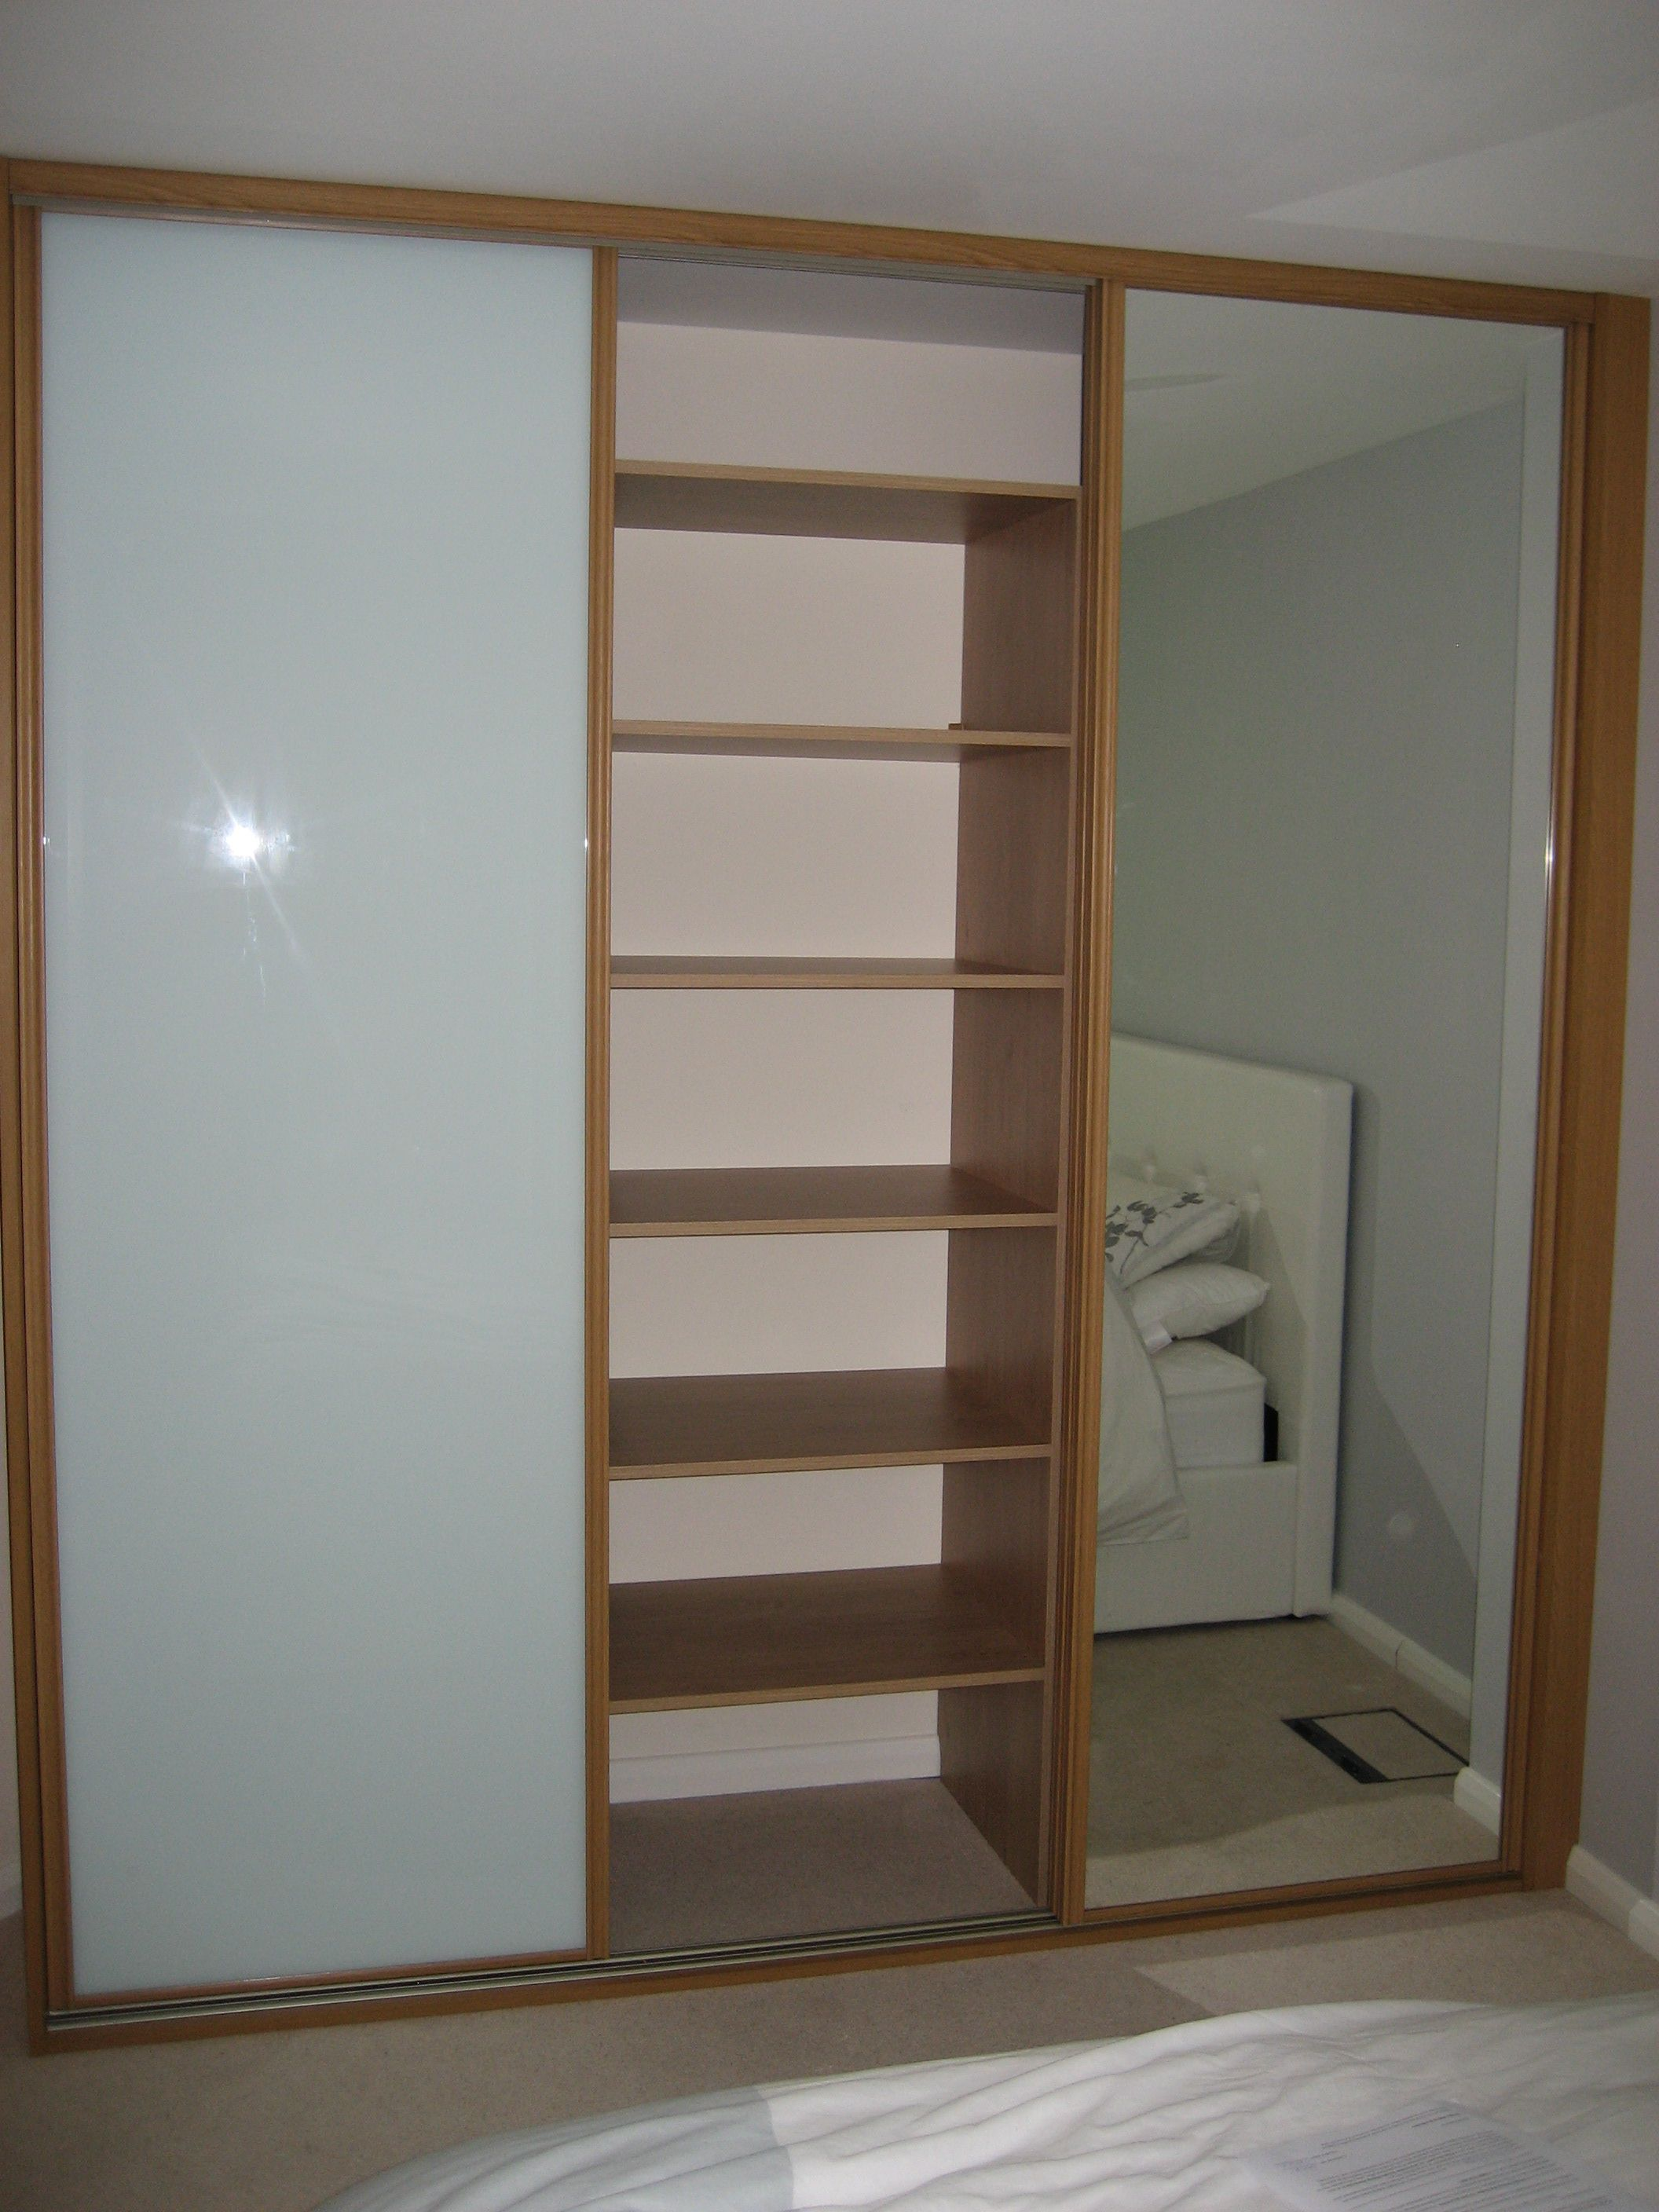 Another Example Of A Two Door Wardrobe Sliding Open